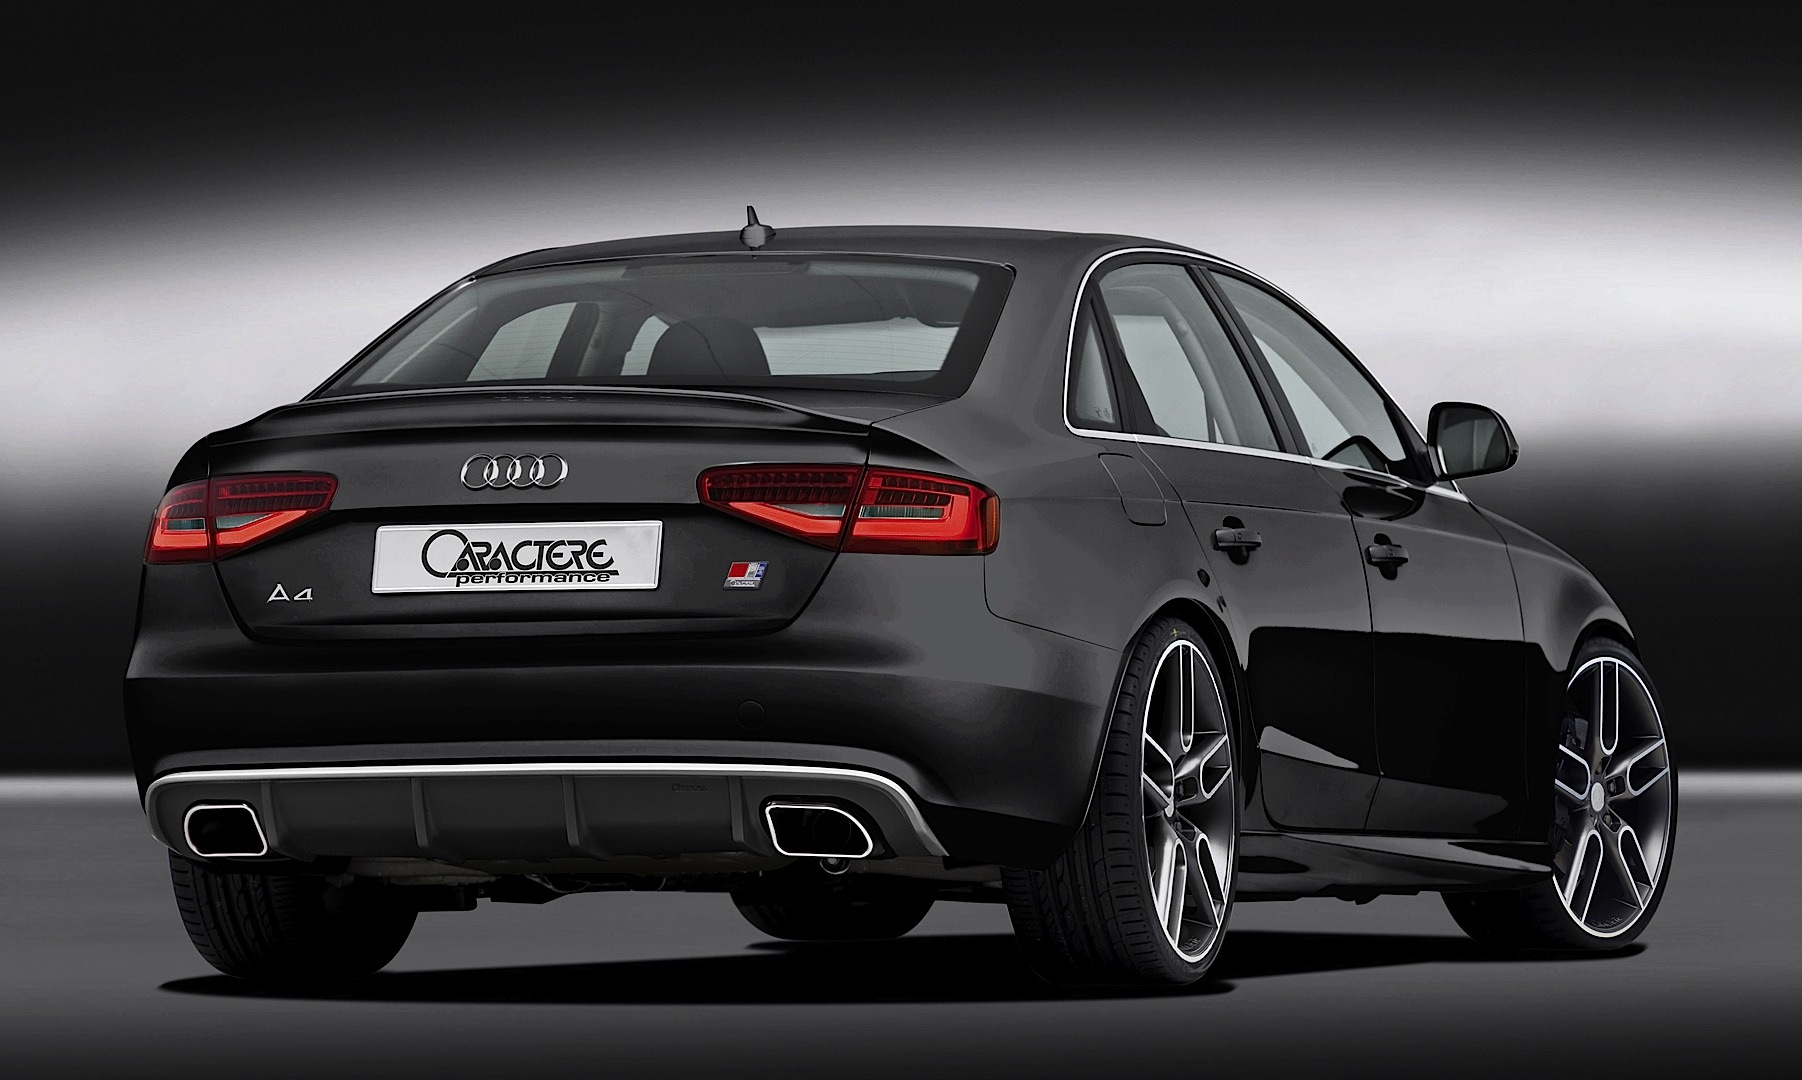 caractere body kit for the 2013 audi a4 and s4 autoevolution. Black Bedroom Furniture Sets. Home Design Ideas